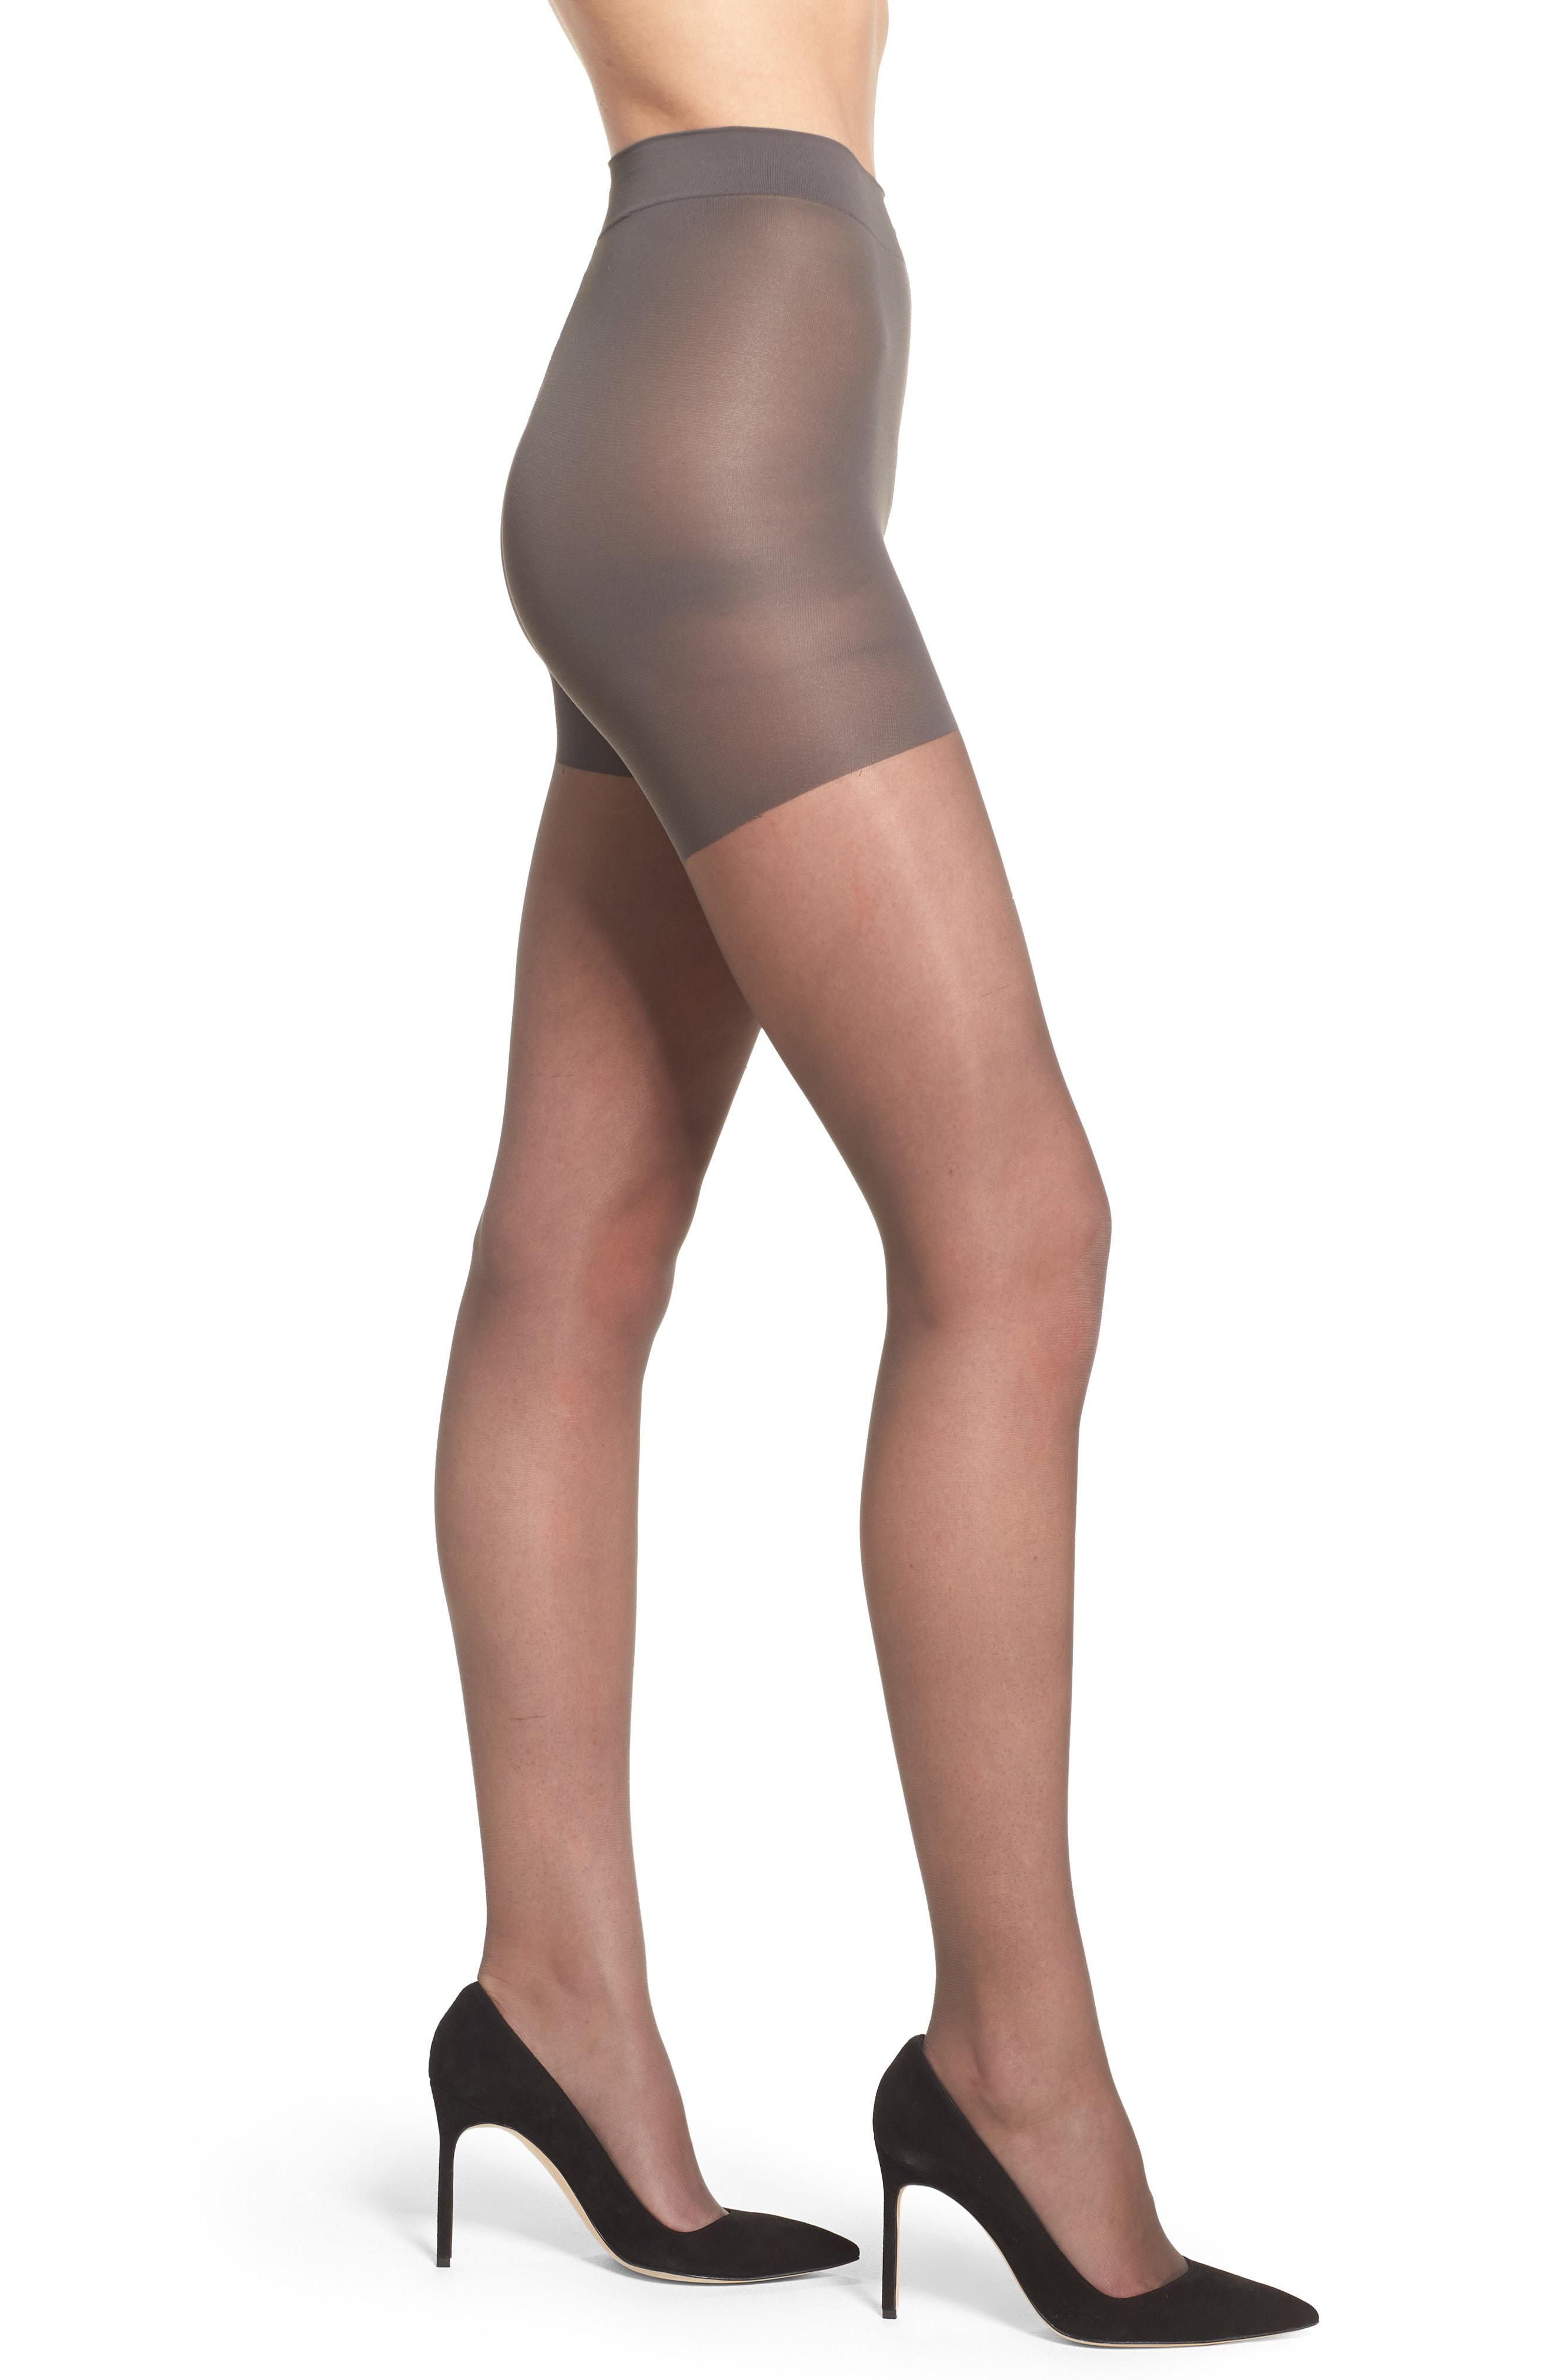 04117619d Lyst - Nordstrom Sheer Control Top Pantyhose